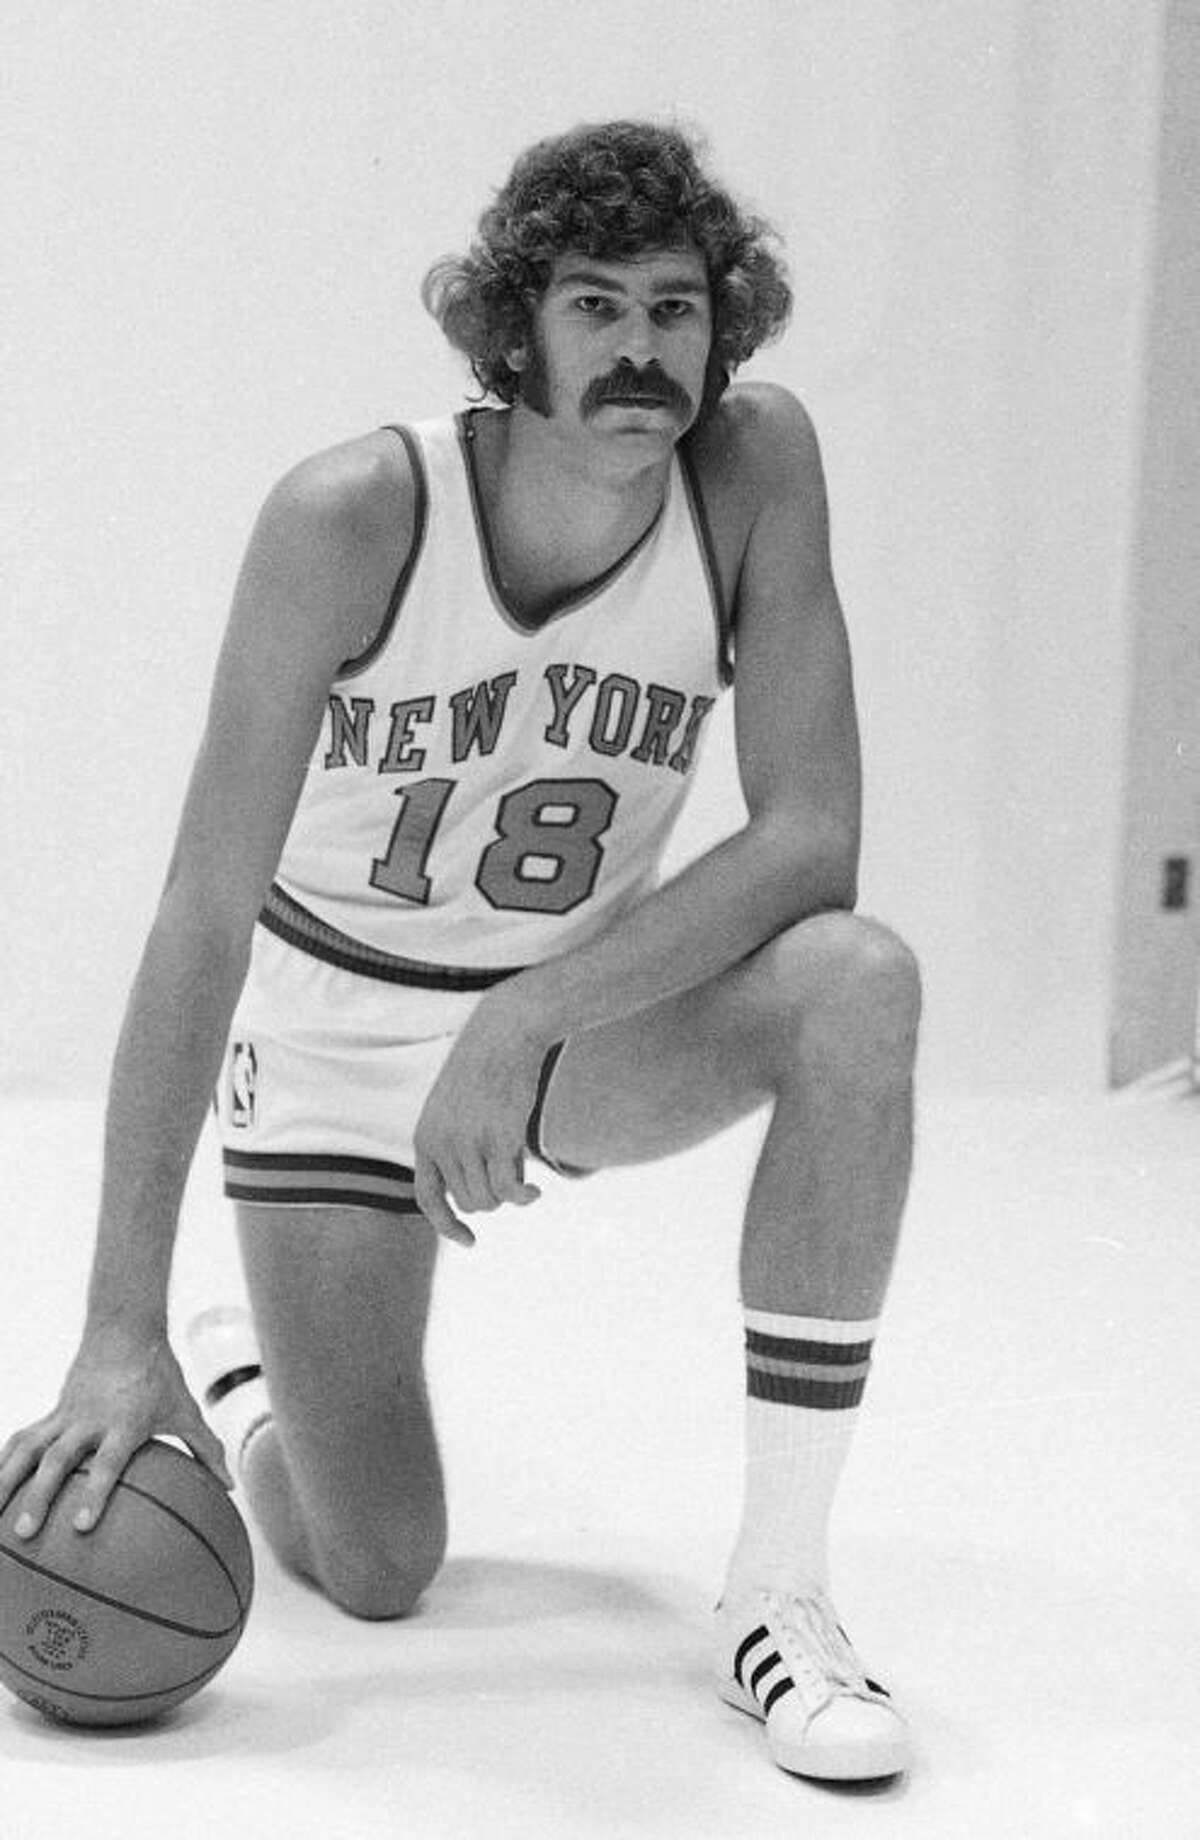 """FILE - In this 1971 file photo, New York Knicks' Phil Jackson poses for a photo. Jackson has returned to the New York Knicks as their team president. The Knicks announced Jackson's hiring Tuesday, March 18, 2014, at a news conference in the lobby of Madison Square Garden, where a giant sign reading """"Welcome Home Phil"""" was overhead and shirts with the No. 18 Jackson wore as a player lined the racks in the merchandise store. (AP Photo/File)"""